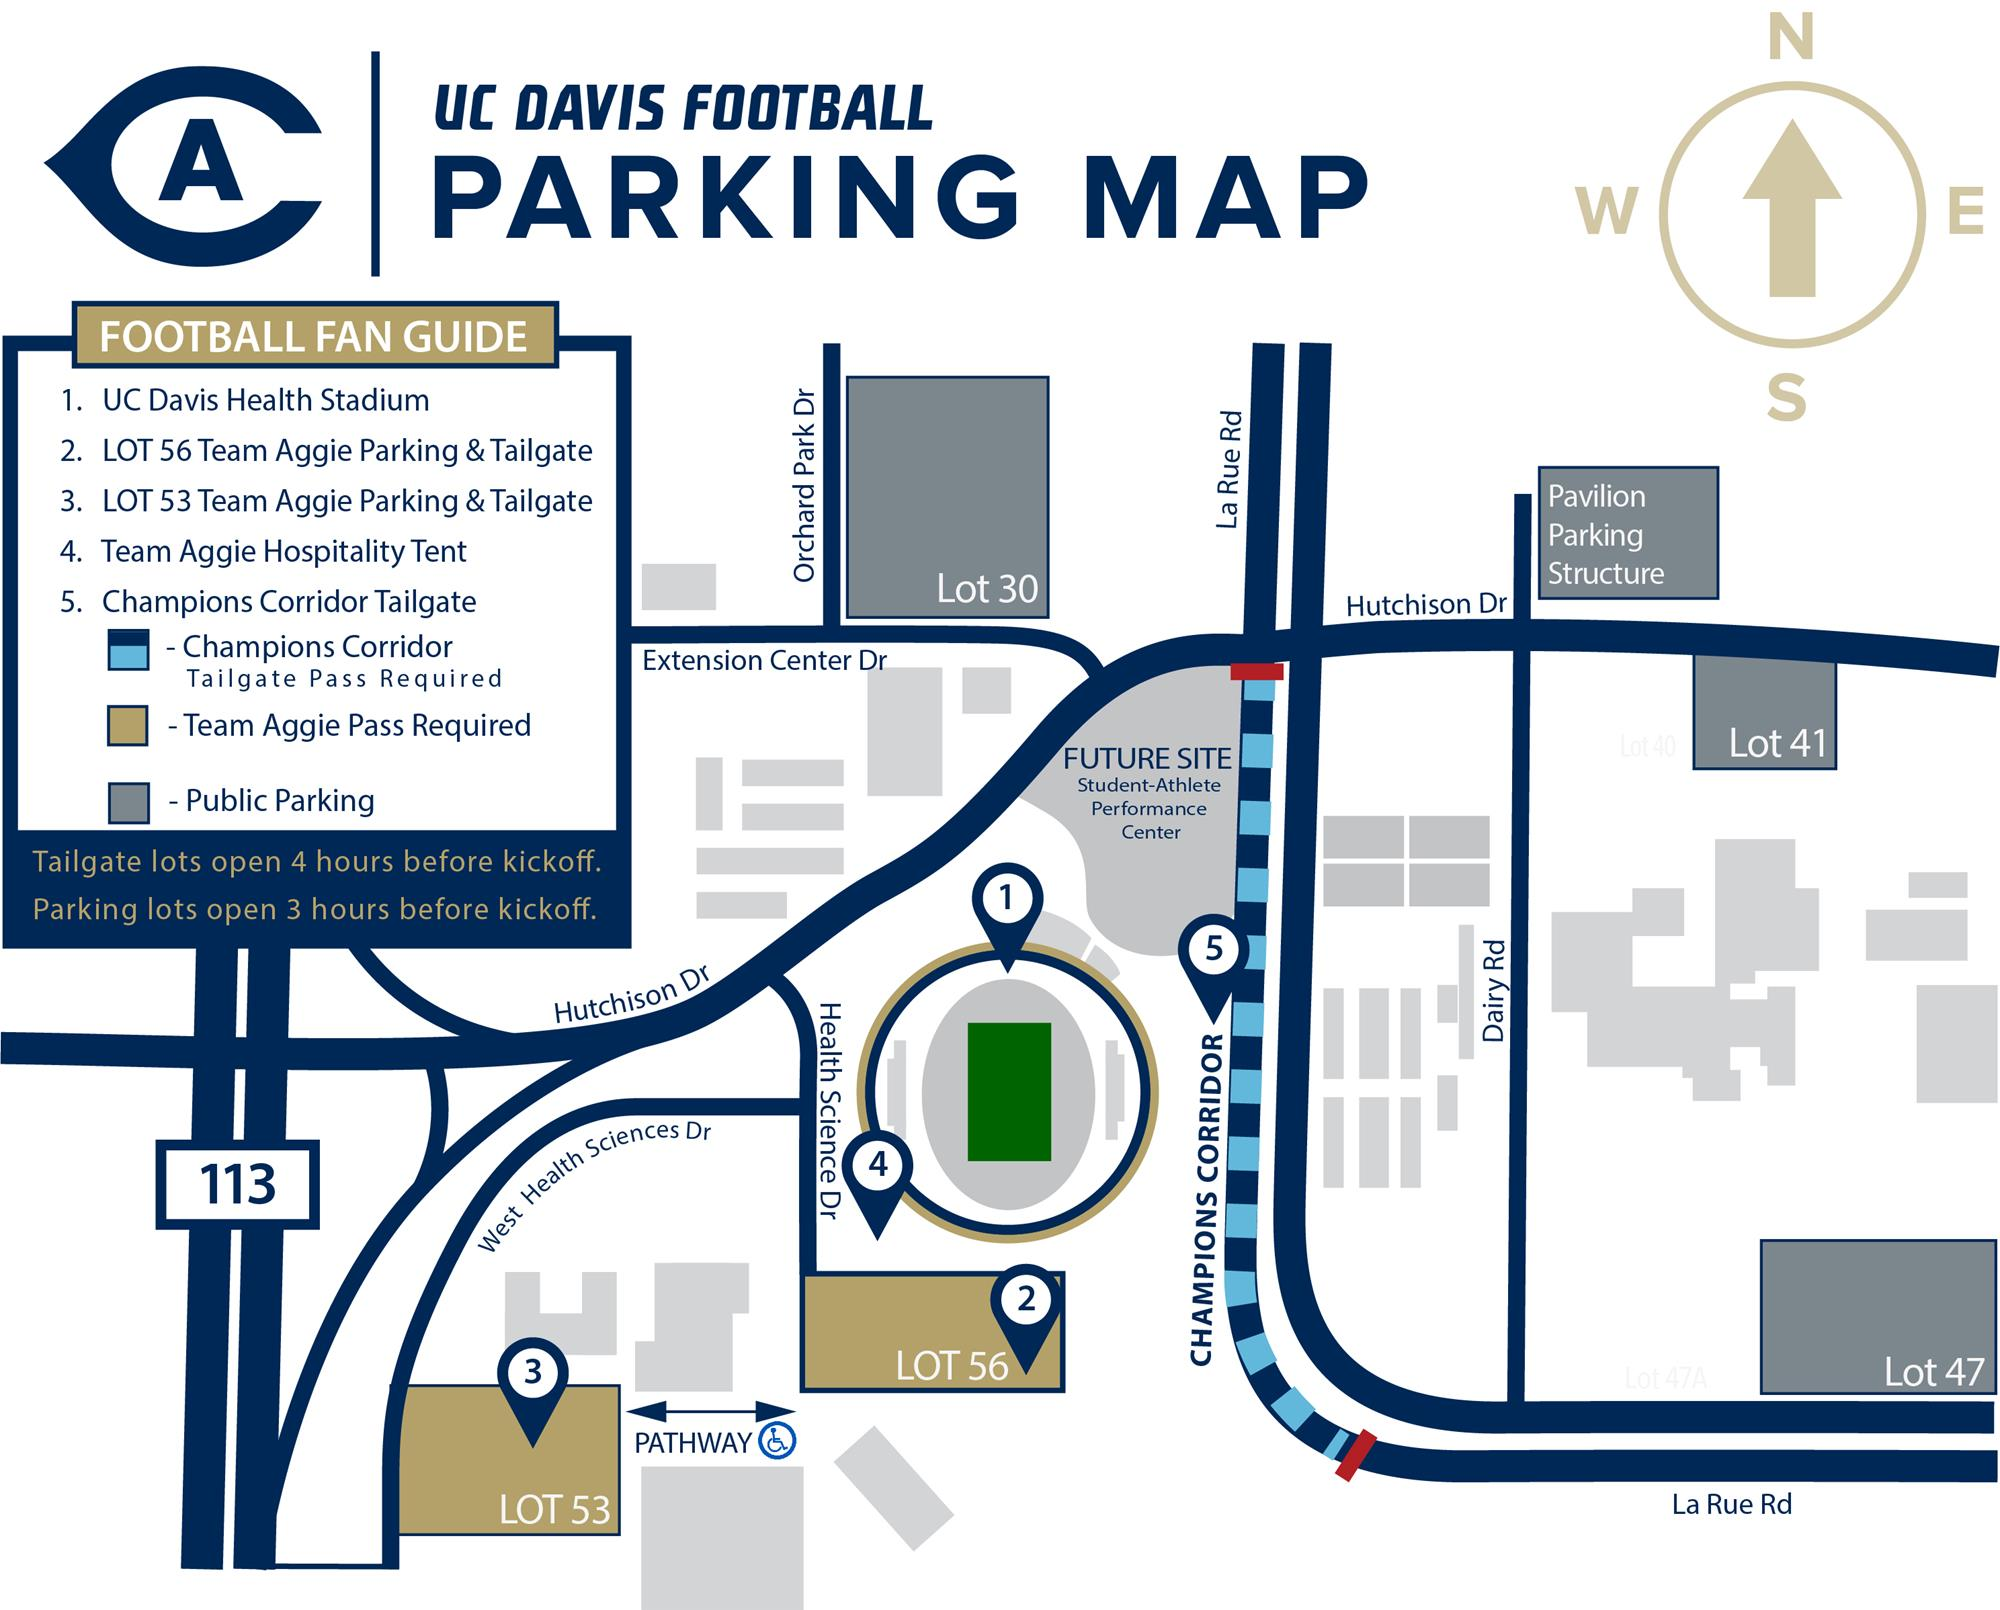 Enhanced game day experience awaits Aggie football fans this ... on eastern washington campus map, ut main campus map, uc riverside campus map, wisconsin uw campus map, university of denver campus map, maine campus map, uc santa cruz campus map, boston university campus map, cornell university campus map, davis street map, north dakota campus map, idaho campus map, uc berkeley campus map, davis california map, santa clara university campus map, uc san diego campus map, cal state east bay campus map, uc merced campus map, cal state northridge campus map, ucla campus map,